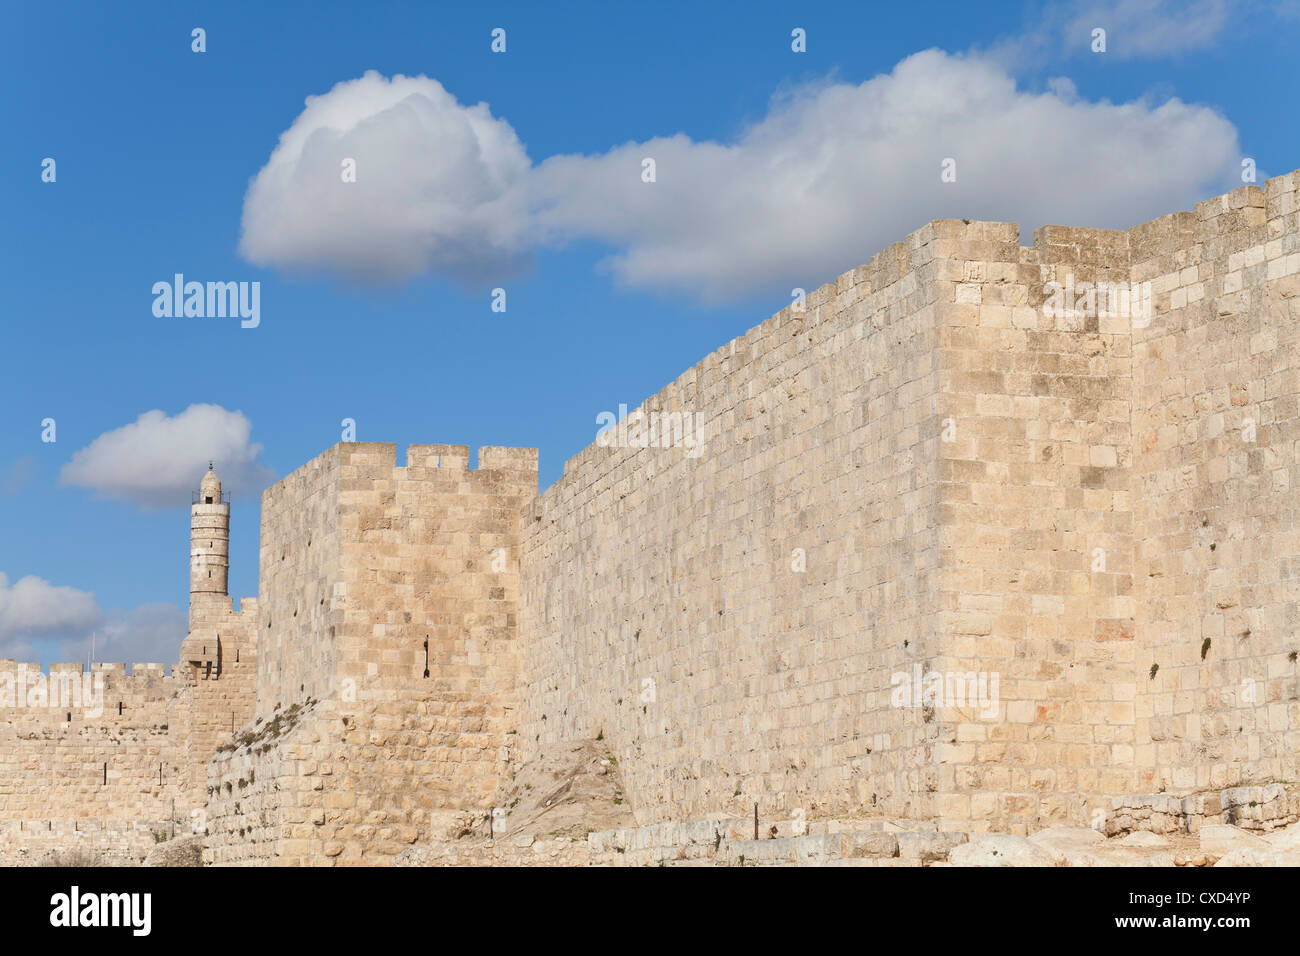 Citadel (Tower of David), Old City Walls, UNESCO World Heritage Site, Jerusalem, Israel, Middle East - Stock Image